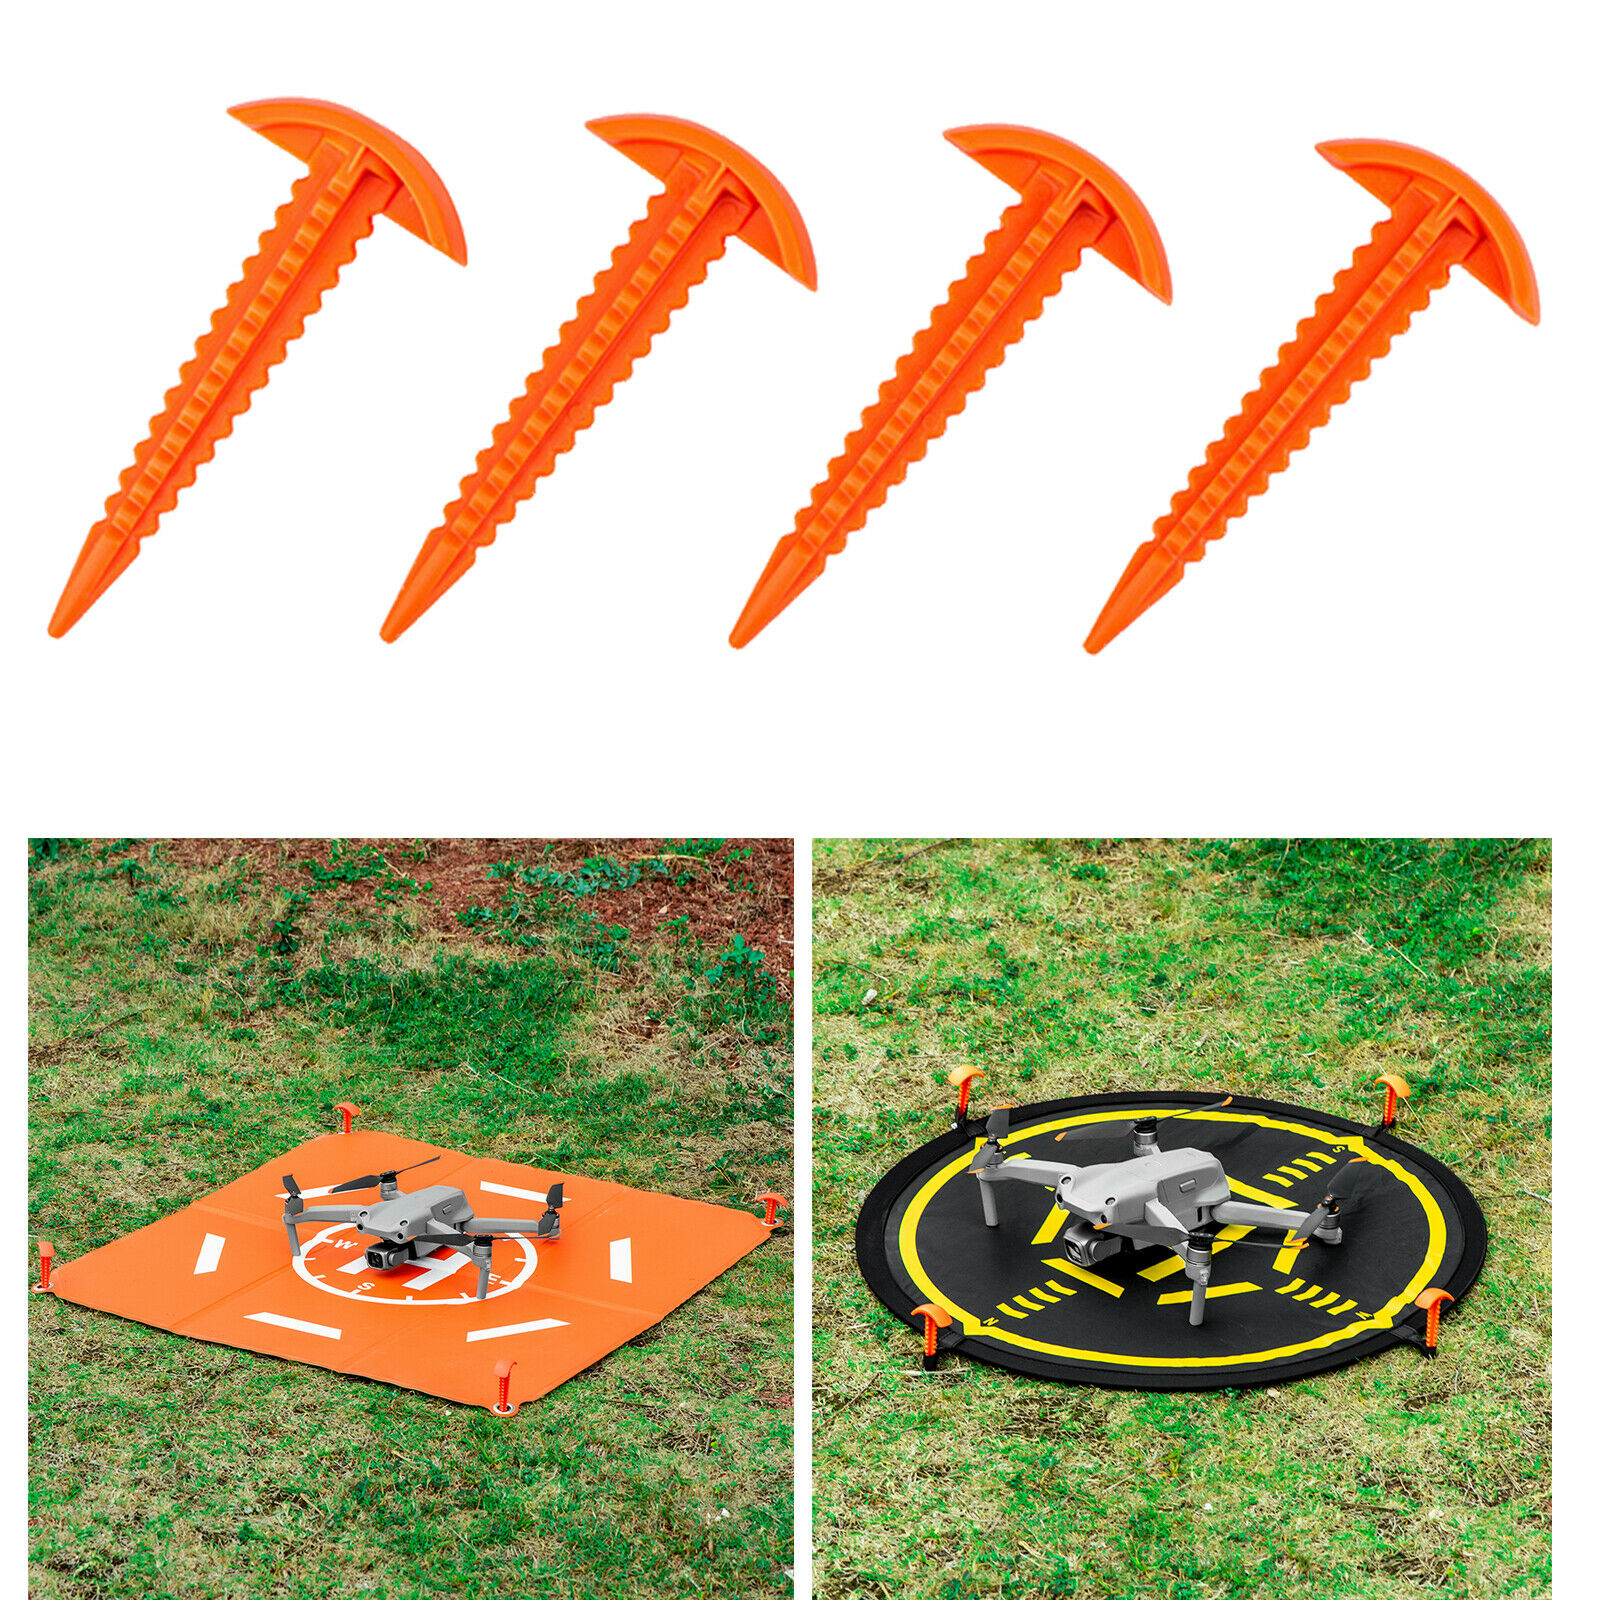 ABS Drone Apron Fixed Nails for Drone Apron Landing Pad Wearable Durable